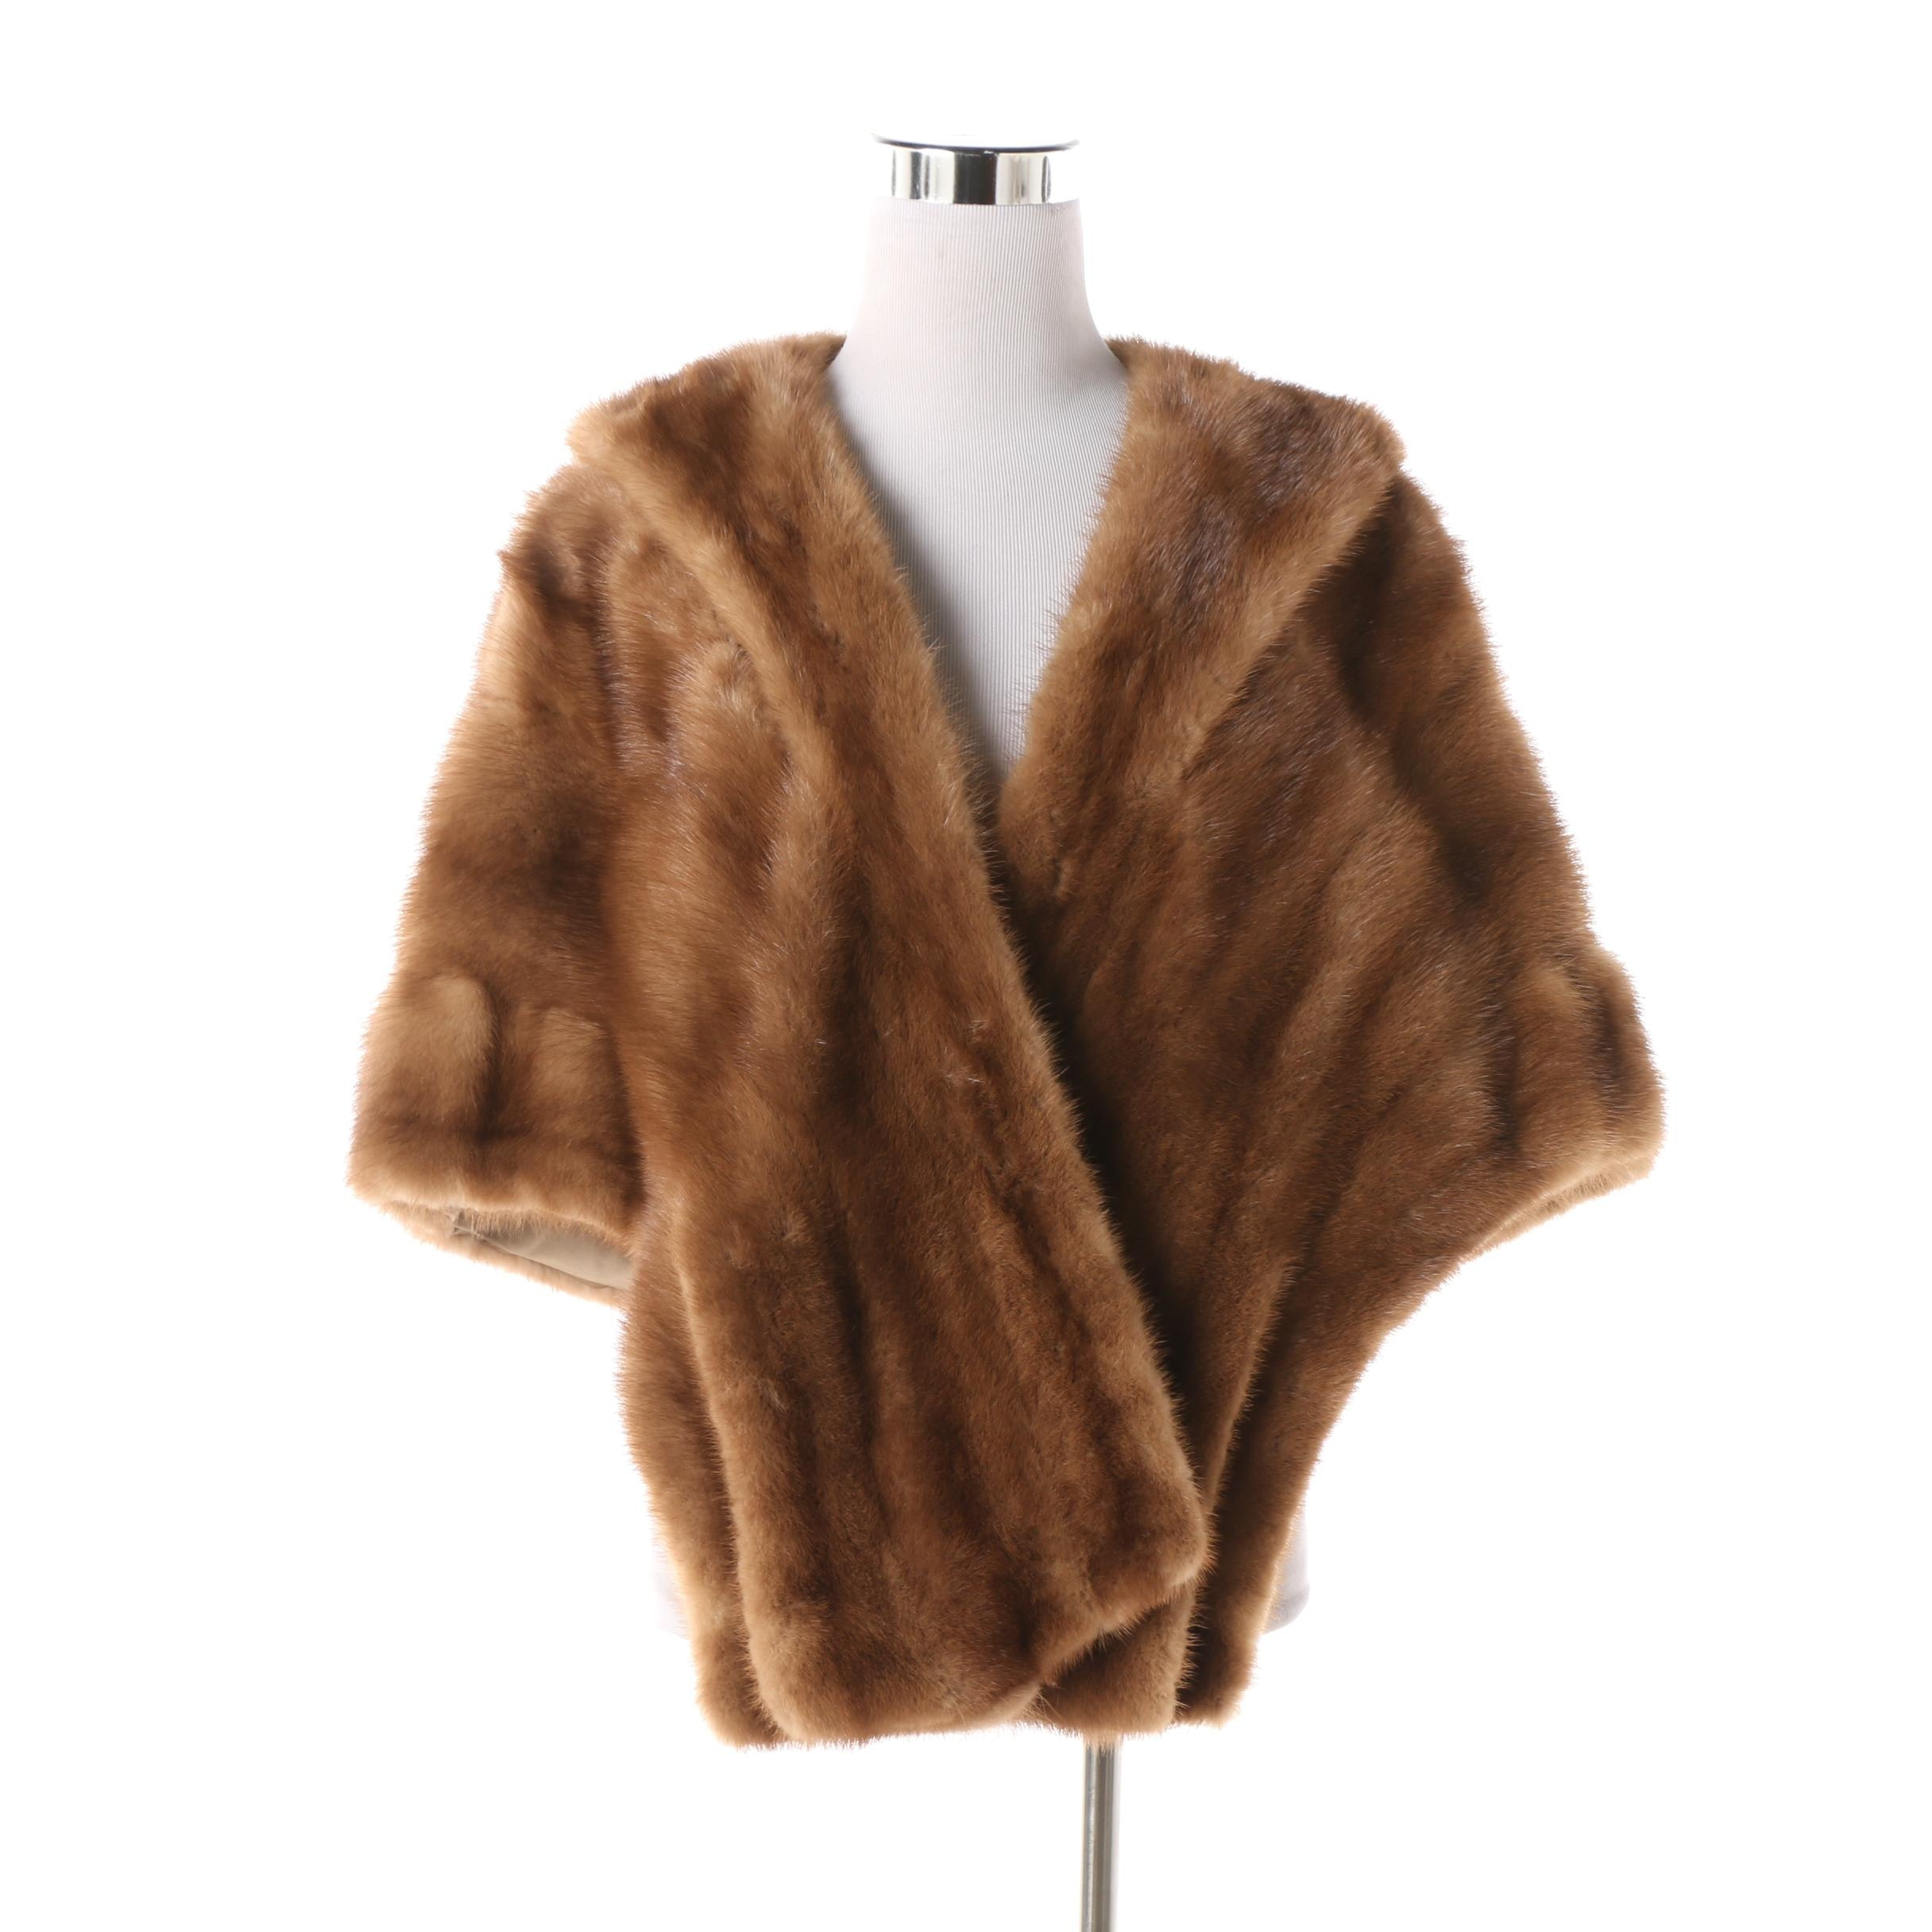 Women's Vintage George A. Hummel's Fur Salon Brown Mink Fur Stole